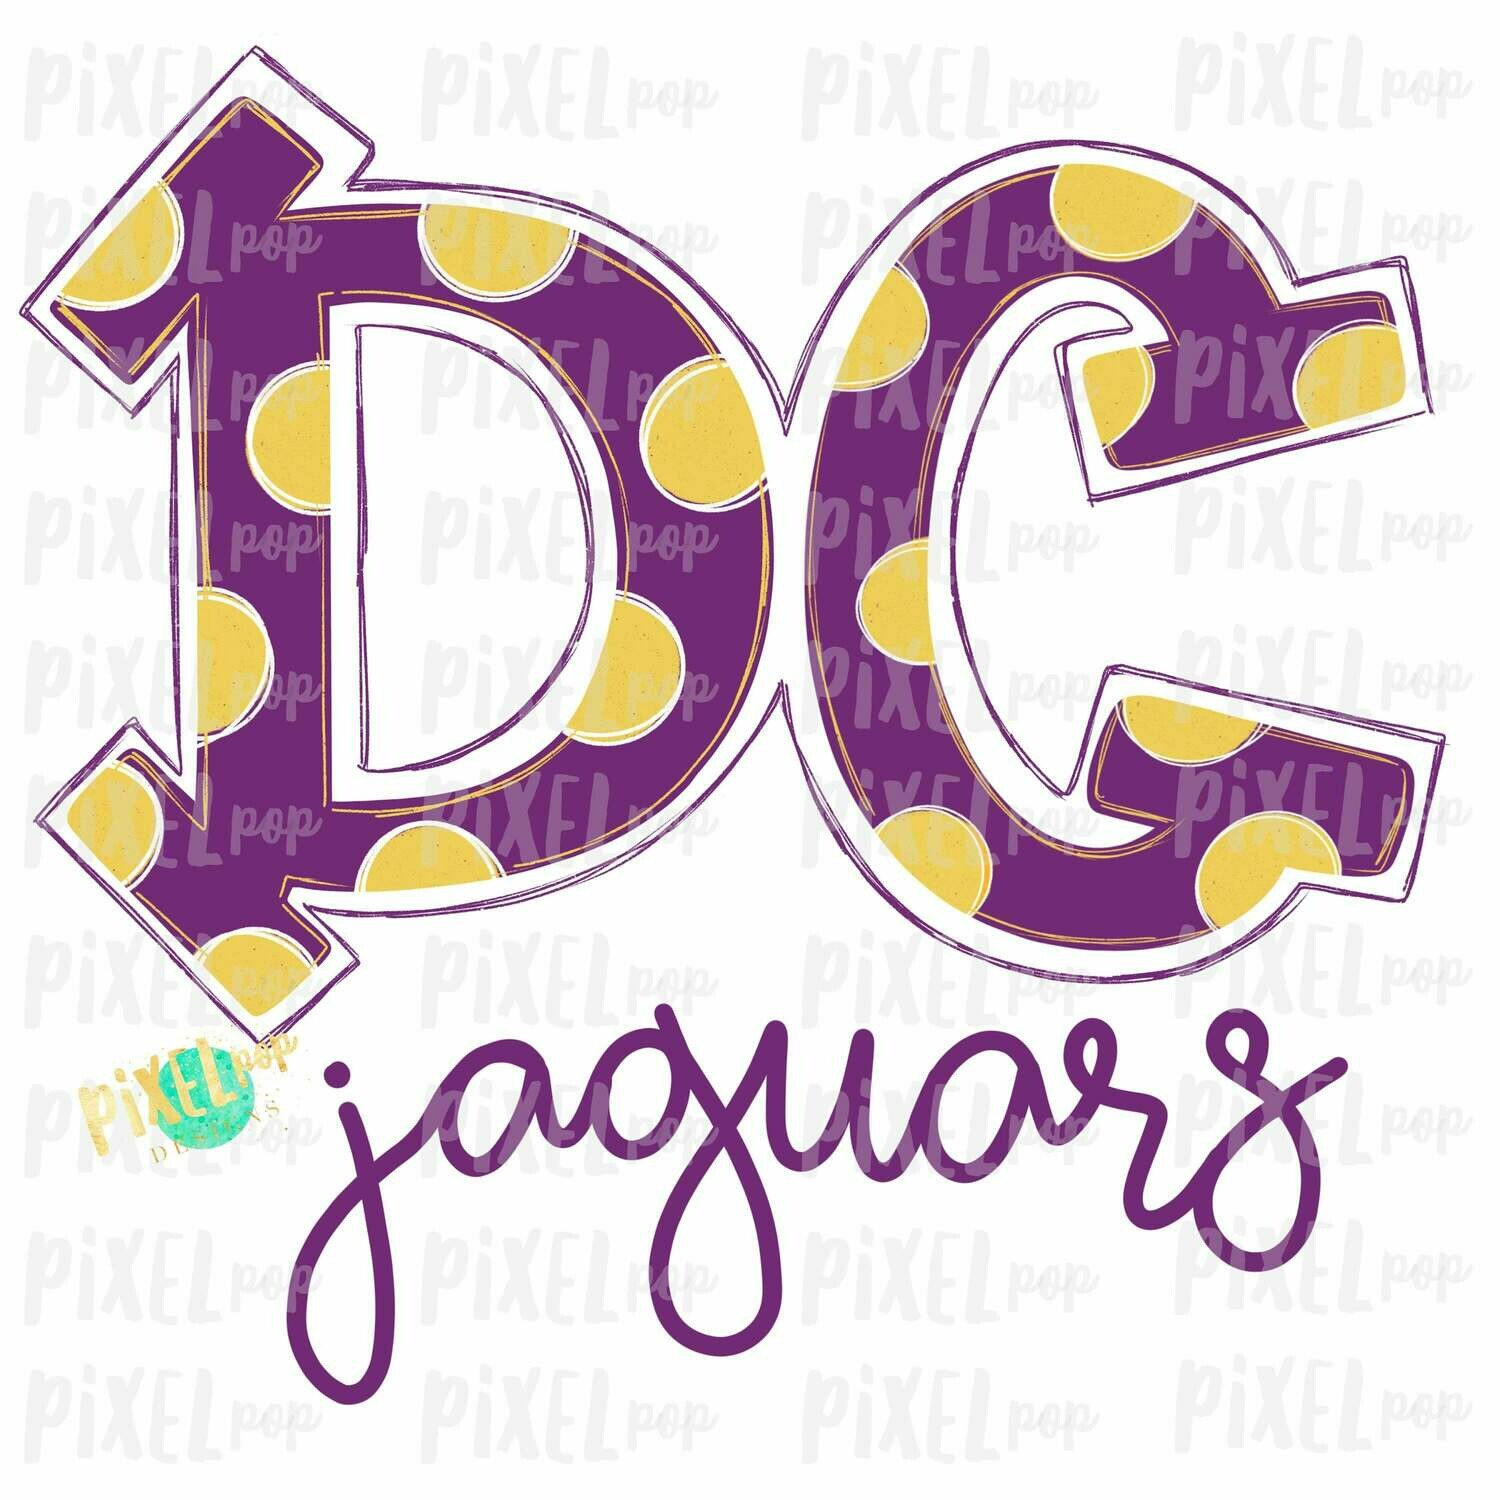 DC Jaguars Purple Yellow Sublimation Digital PNG Clip Art | Sublimation Design | Heat Transfer PNG | Digital Download | Printable